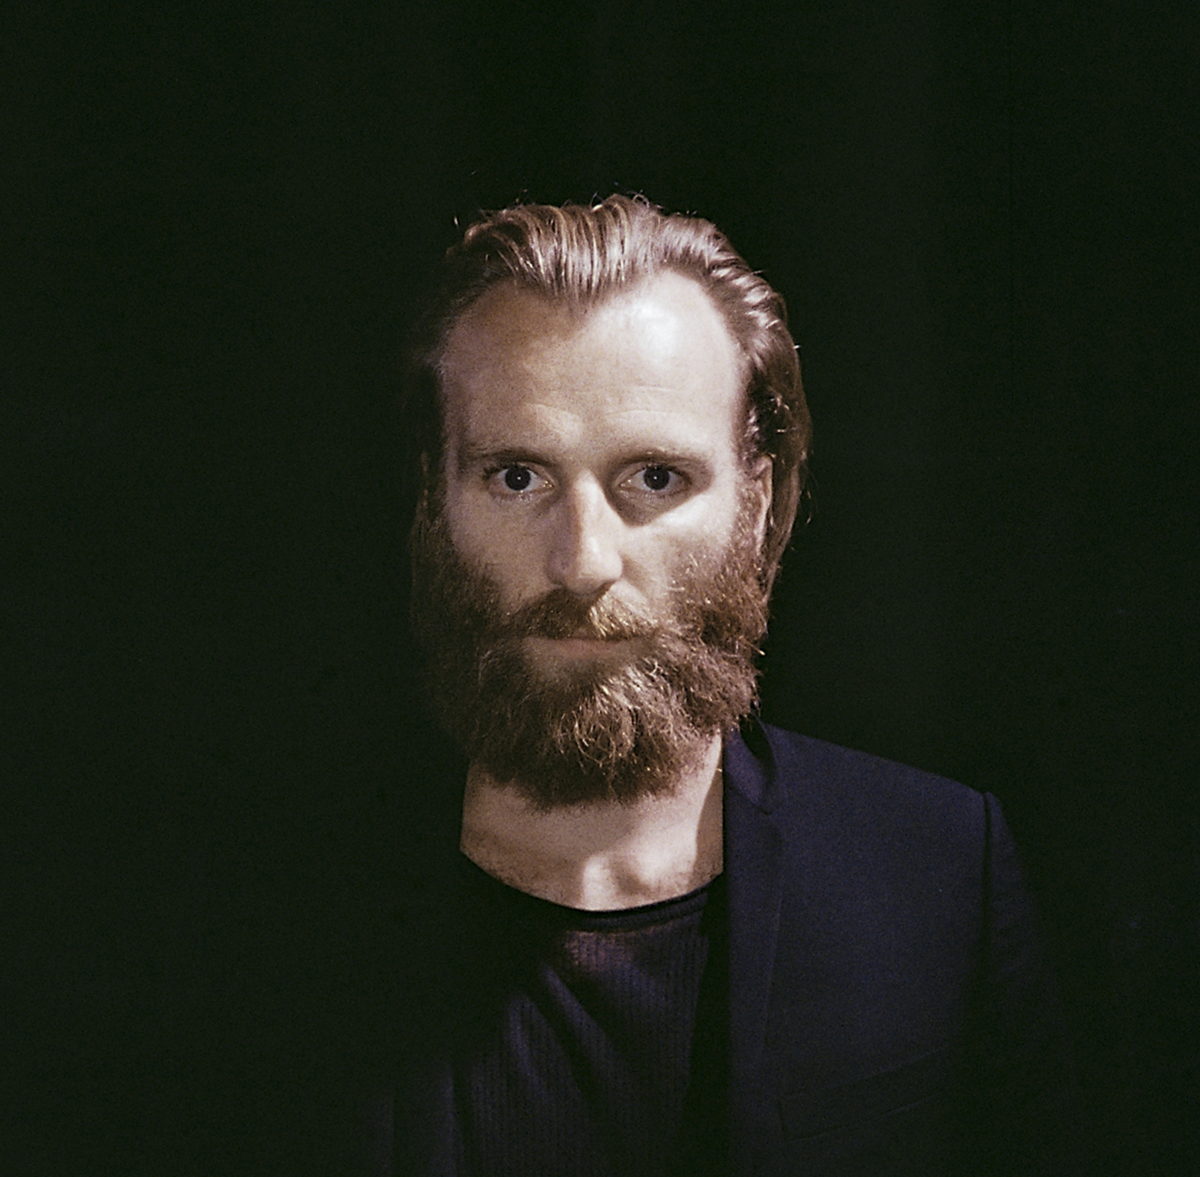 Ben Frost announces new album 'The Centre Cannot Hold', shares first video